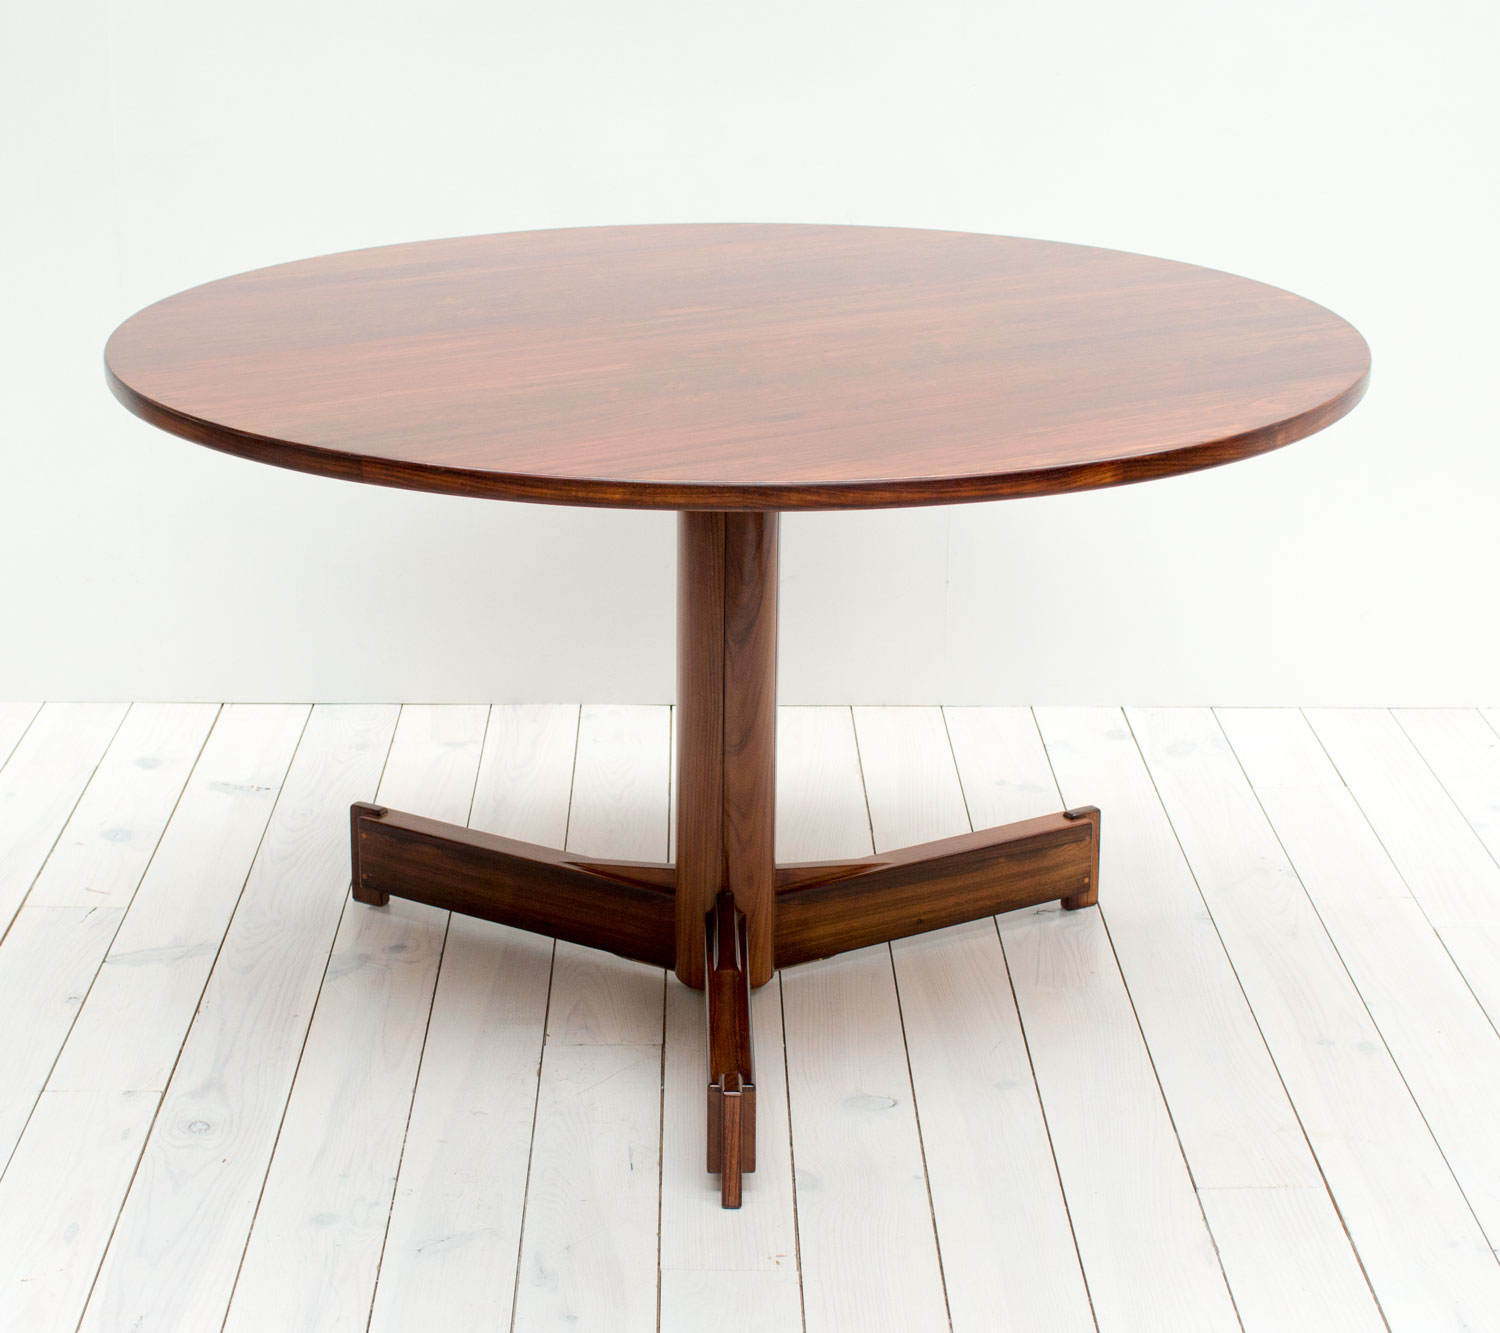 Robert Heritage Rosewood Dining Table - Arc – Vintage And Antique Furniture